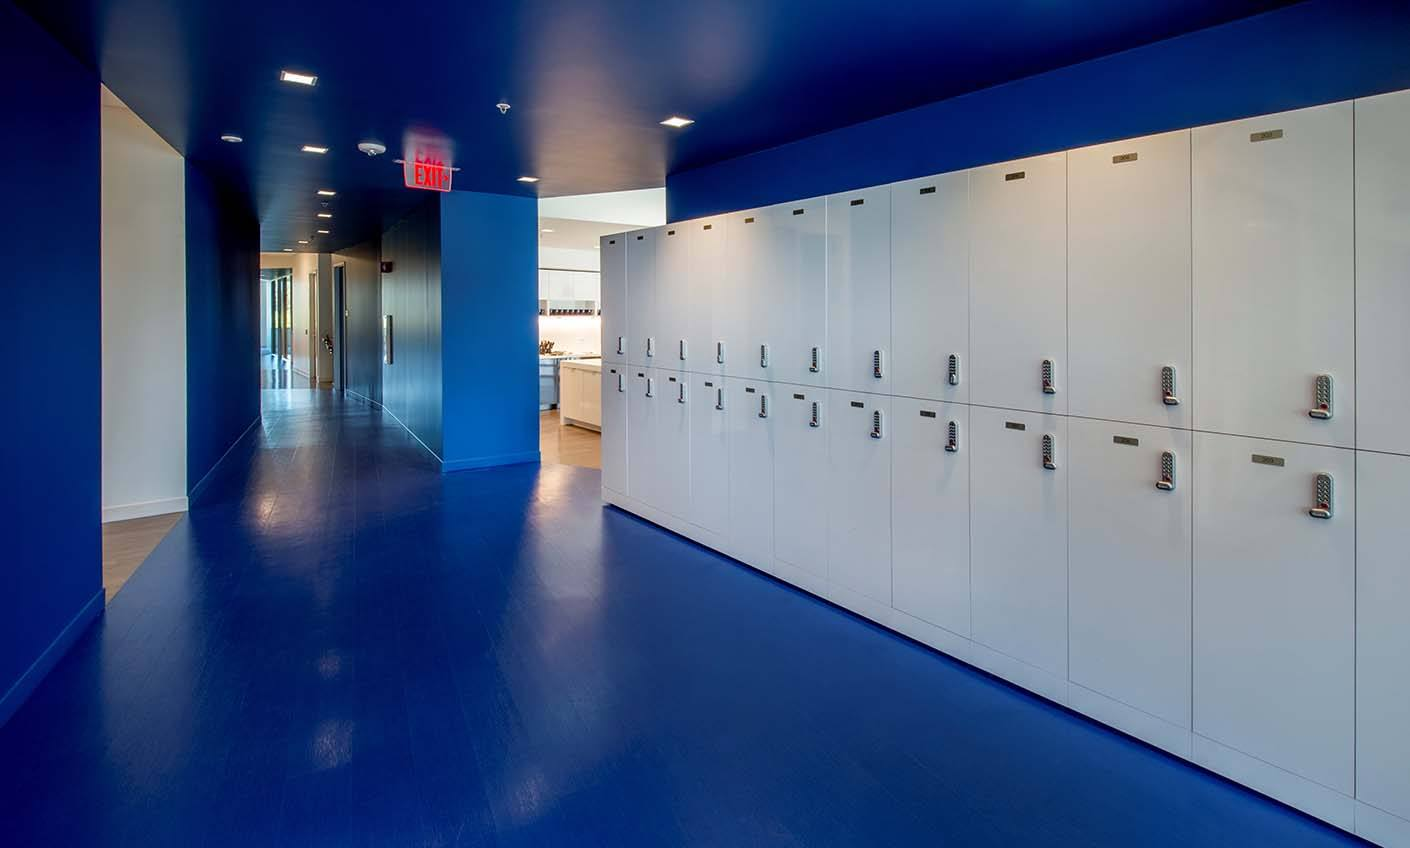 white metal lockers in blue building